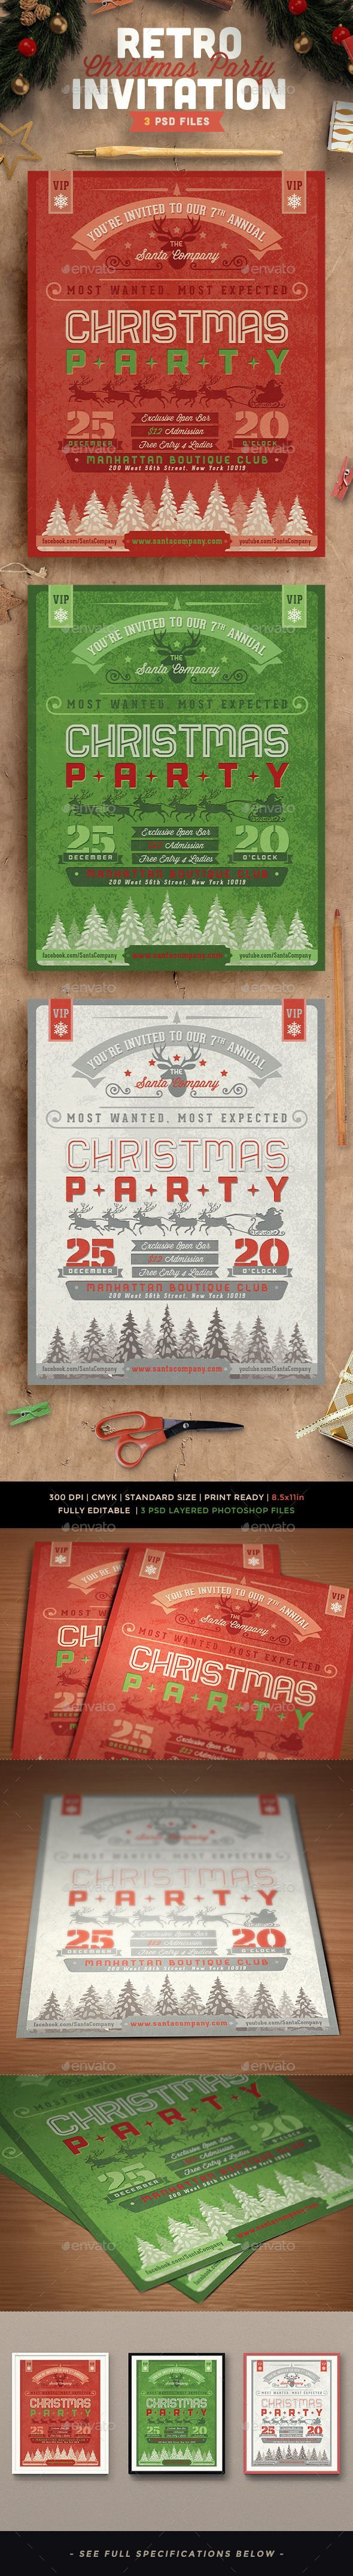 sample invitation letter to attend an event%0A Retro Christmas Party Invitation